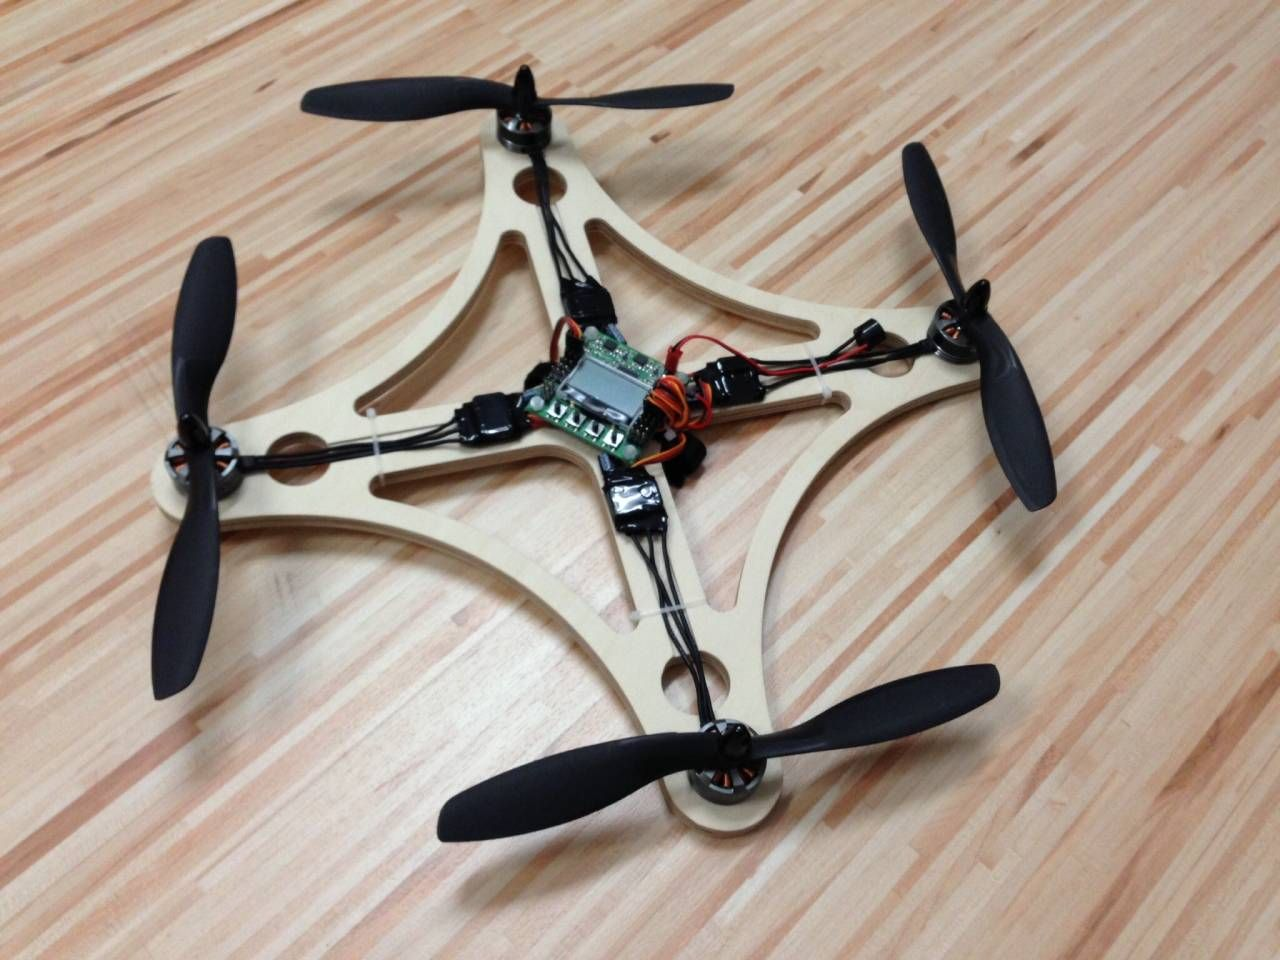 Durable Wood Quadrocopter For Beginners Or Relaxing